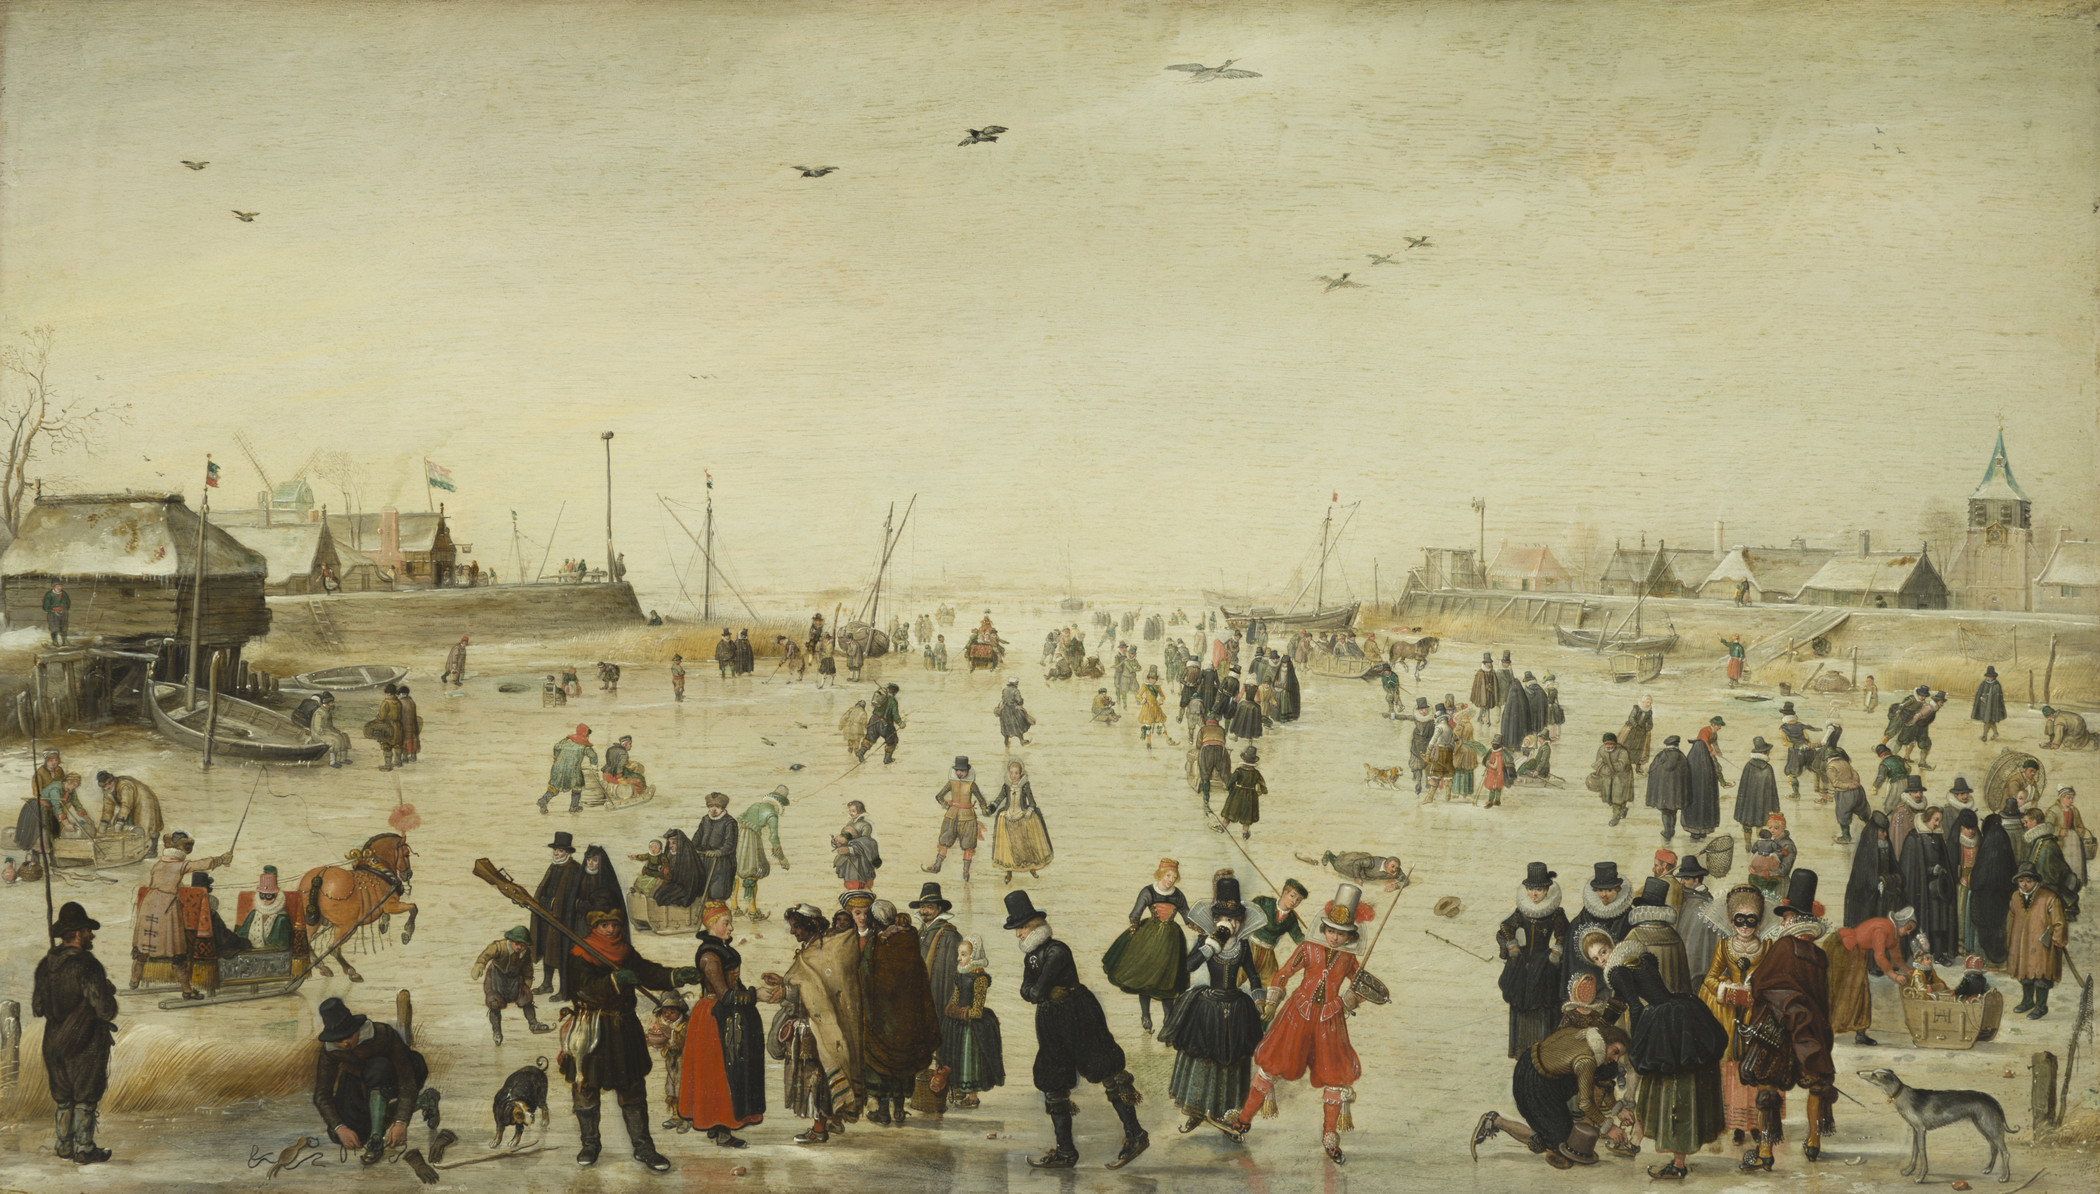 Hendrick Avercamp, Winter Scene on a Frozen Canal, c. 1620, Los Angeles County Museum of Art, partial gift of Mr. and Mrs. Edward William Carter and purchased with funds provided by The Ahmanson Foundation, the Paul Rodman Mabury Collection, the William Randolph Hearst Collection, the Michael J. Connell Foundation, the Marion Davies Collection, Mr. and Mrs. Lauritz Melchior, Mr. and Mrs. R. Stanton Avery, the Estate of Anita M. Baldwin by exchange, and Hannah L. Carter, photo © Museum Associates/LACMA